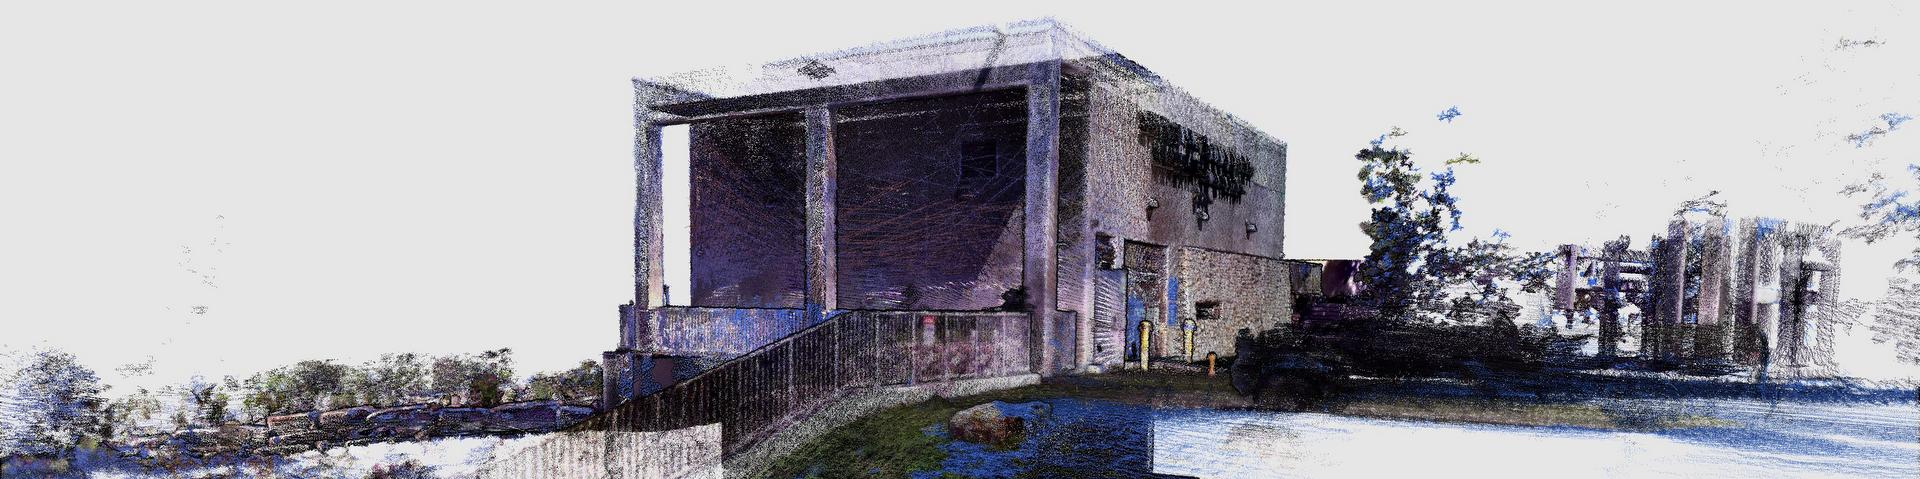 Point cloud model of generating station in Almonte, ON - scanned with Kaarta Contour mobile mapping system